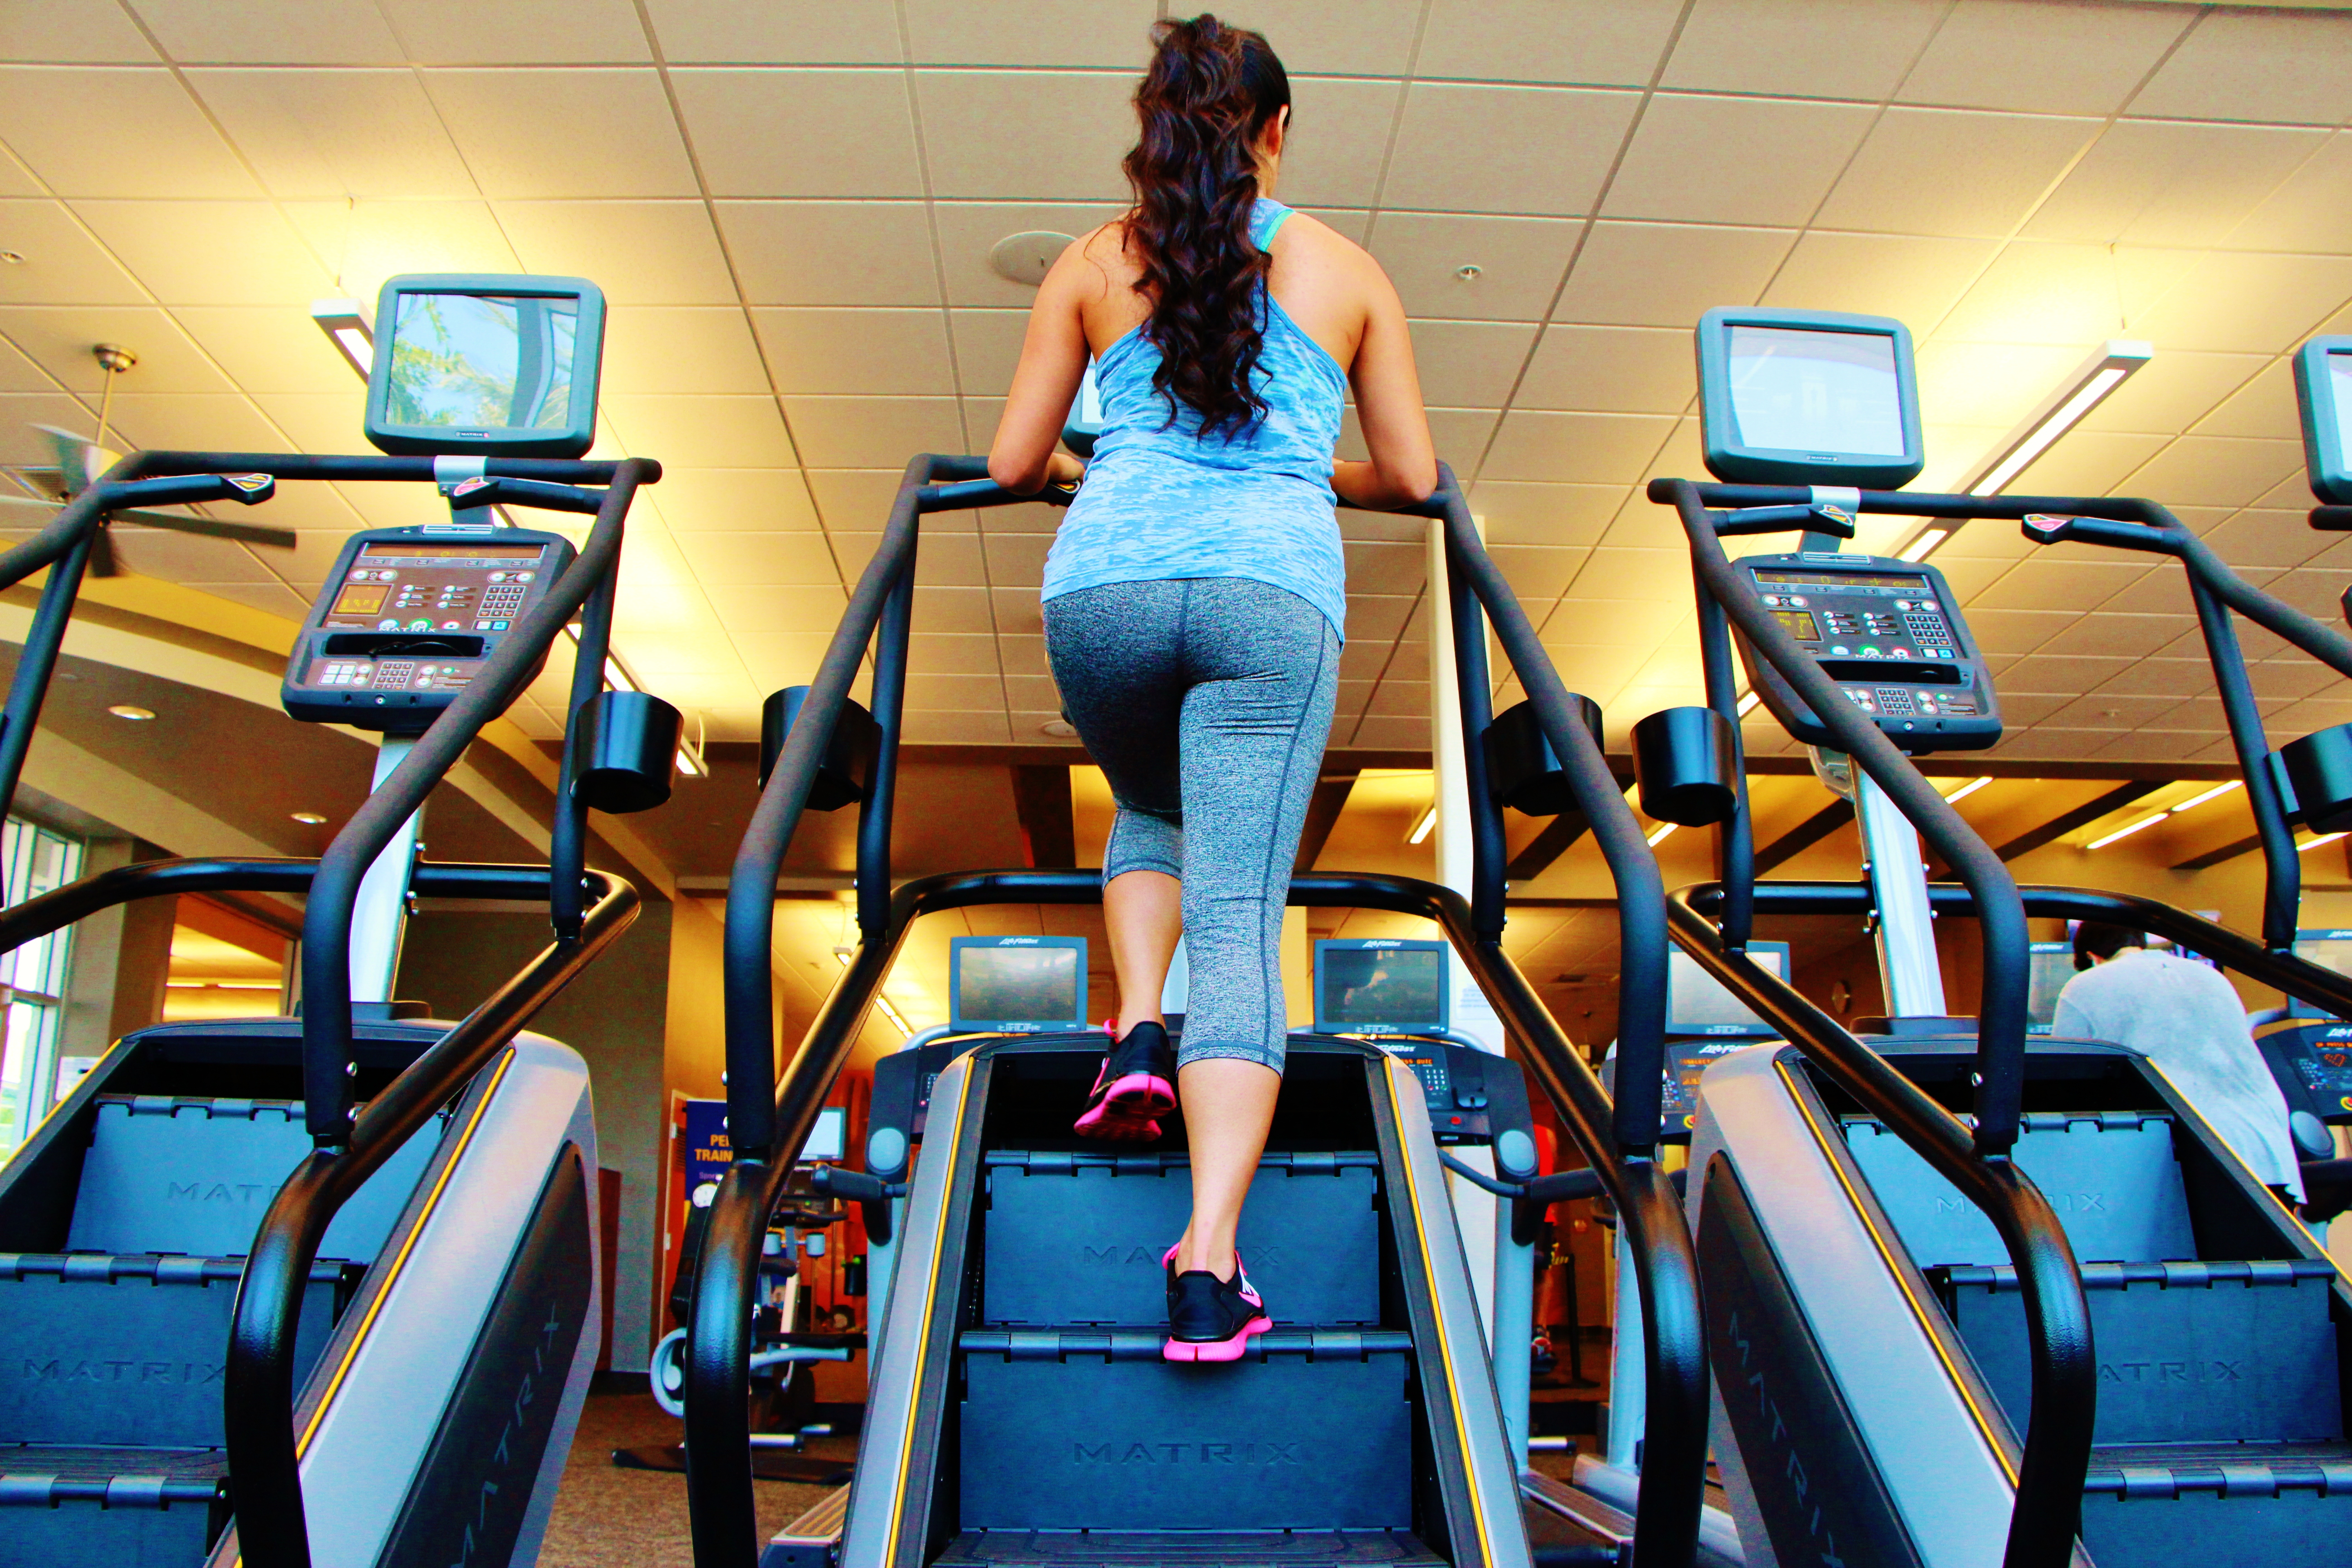 Cardio Machines 101 Choosing The Best Programs For Losing Weight And Body Fat